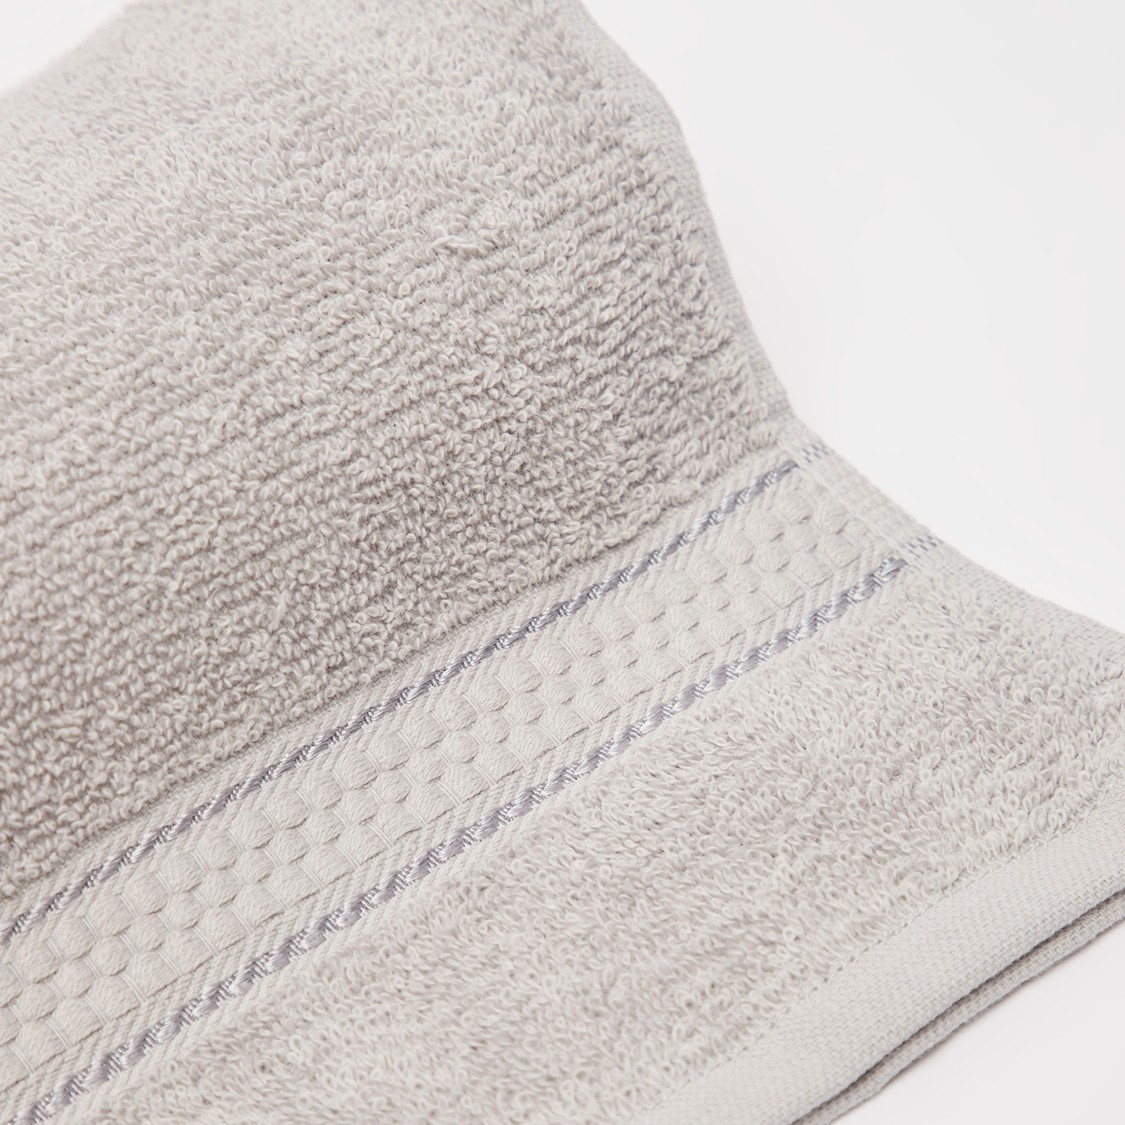 Textured Hand Towel - 80x50 cms